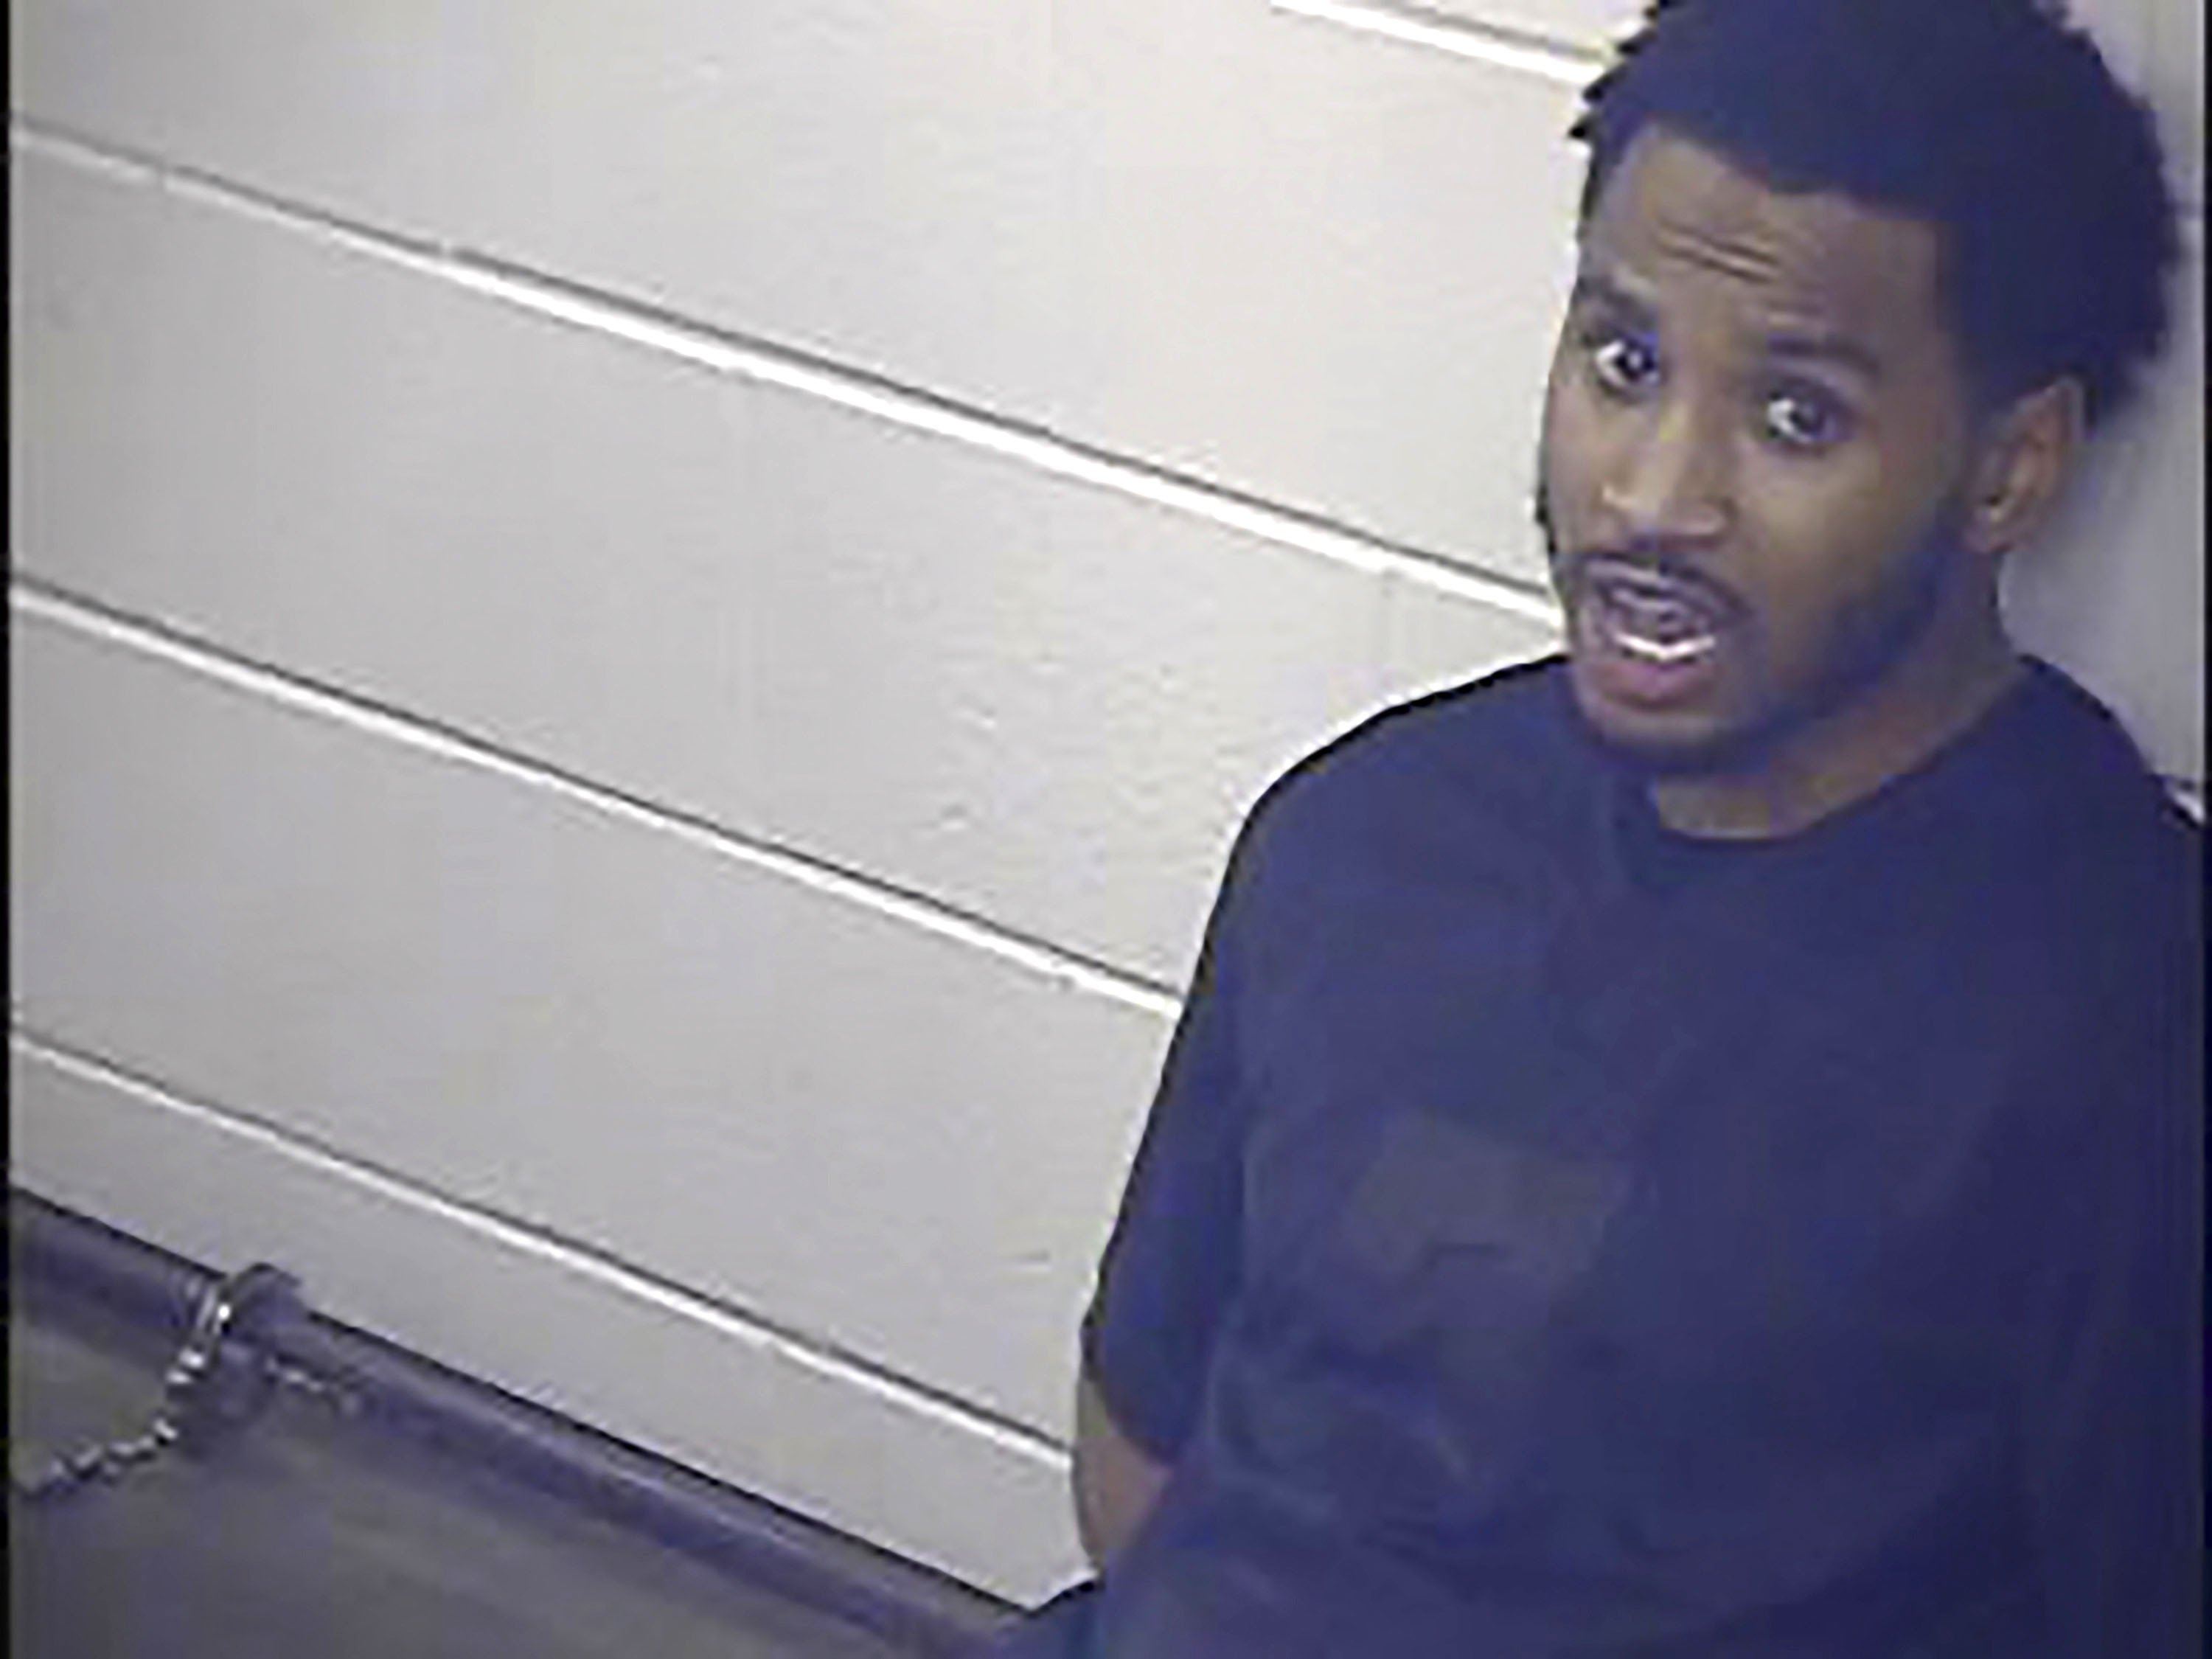 R&B artist Trey Songz arrested at AFC Championship game - Associated Press